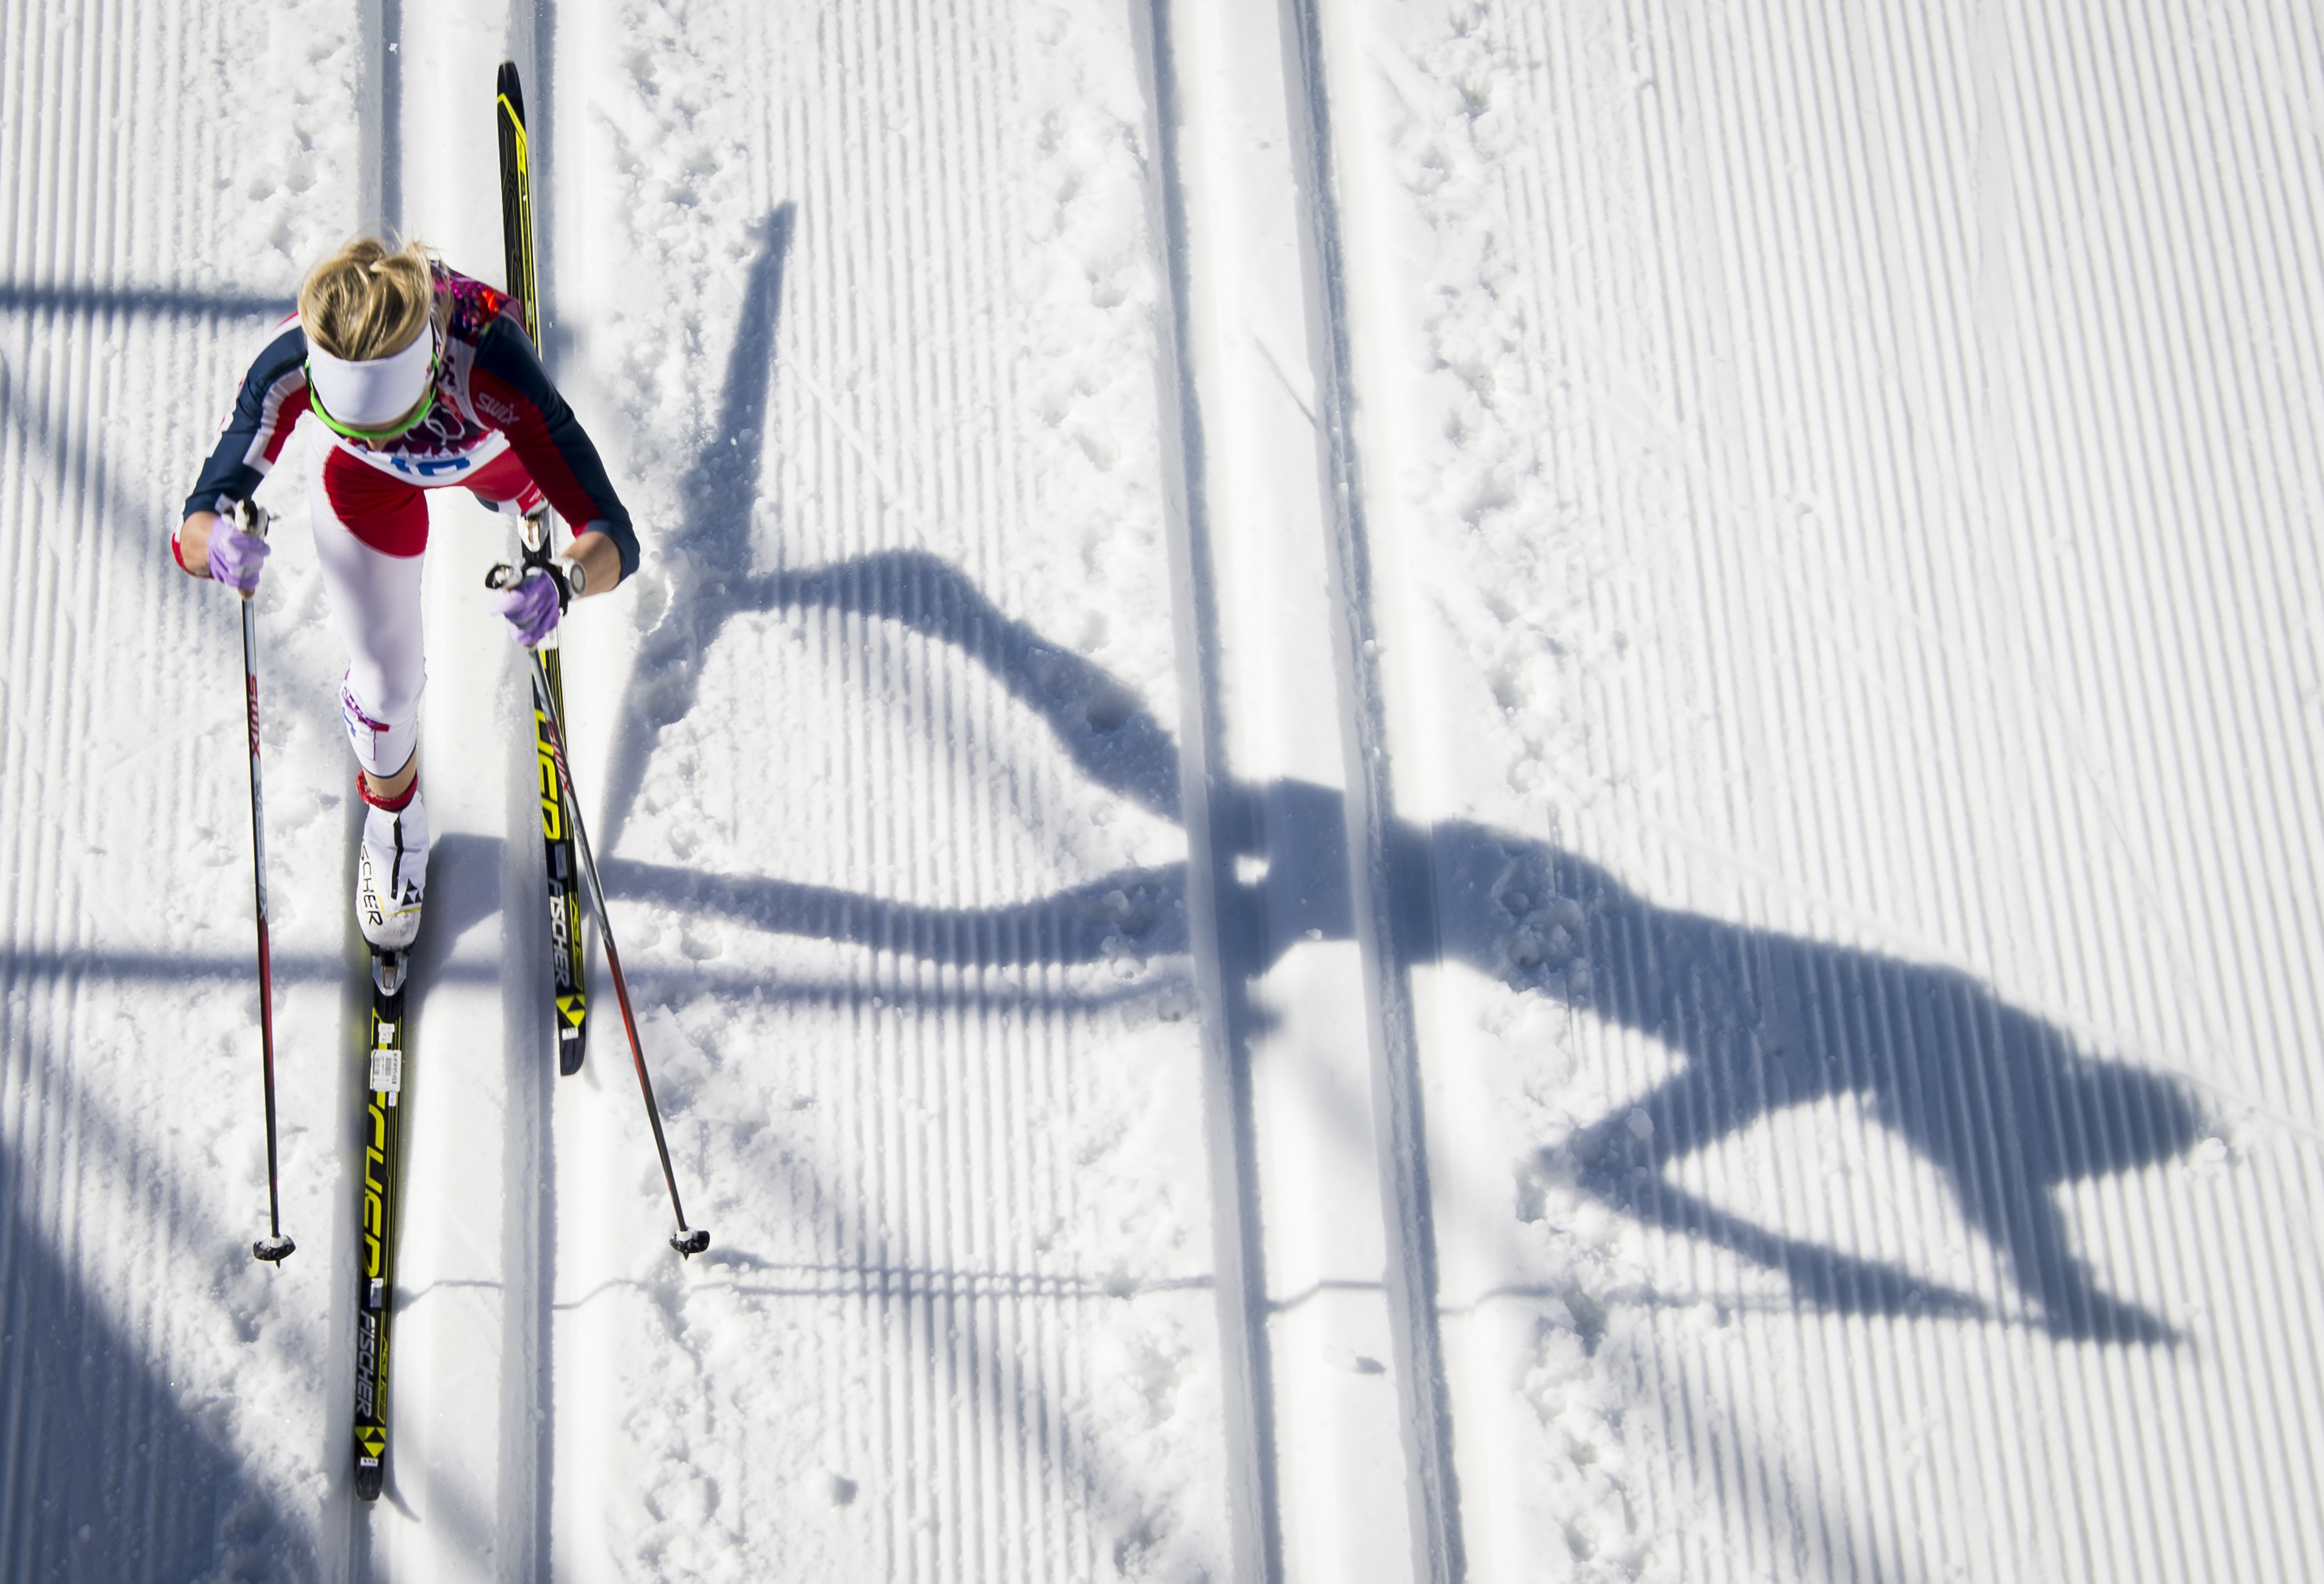 Norway's Therese Johaug competes to win bronze in the Women's Cross-Country Skiing 10km Classic during the Sochi Winter Olympics Feb. 13, 2014 in Rosa Khutor near Sochi.